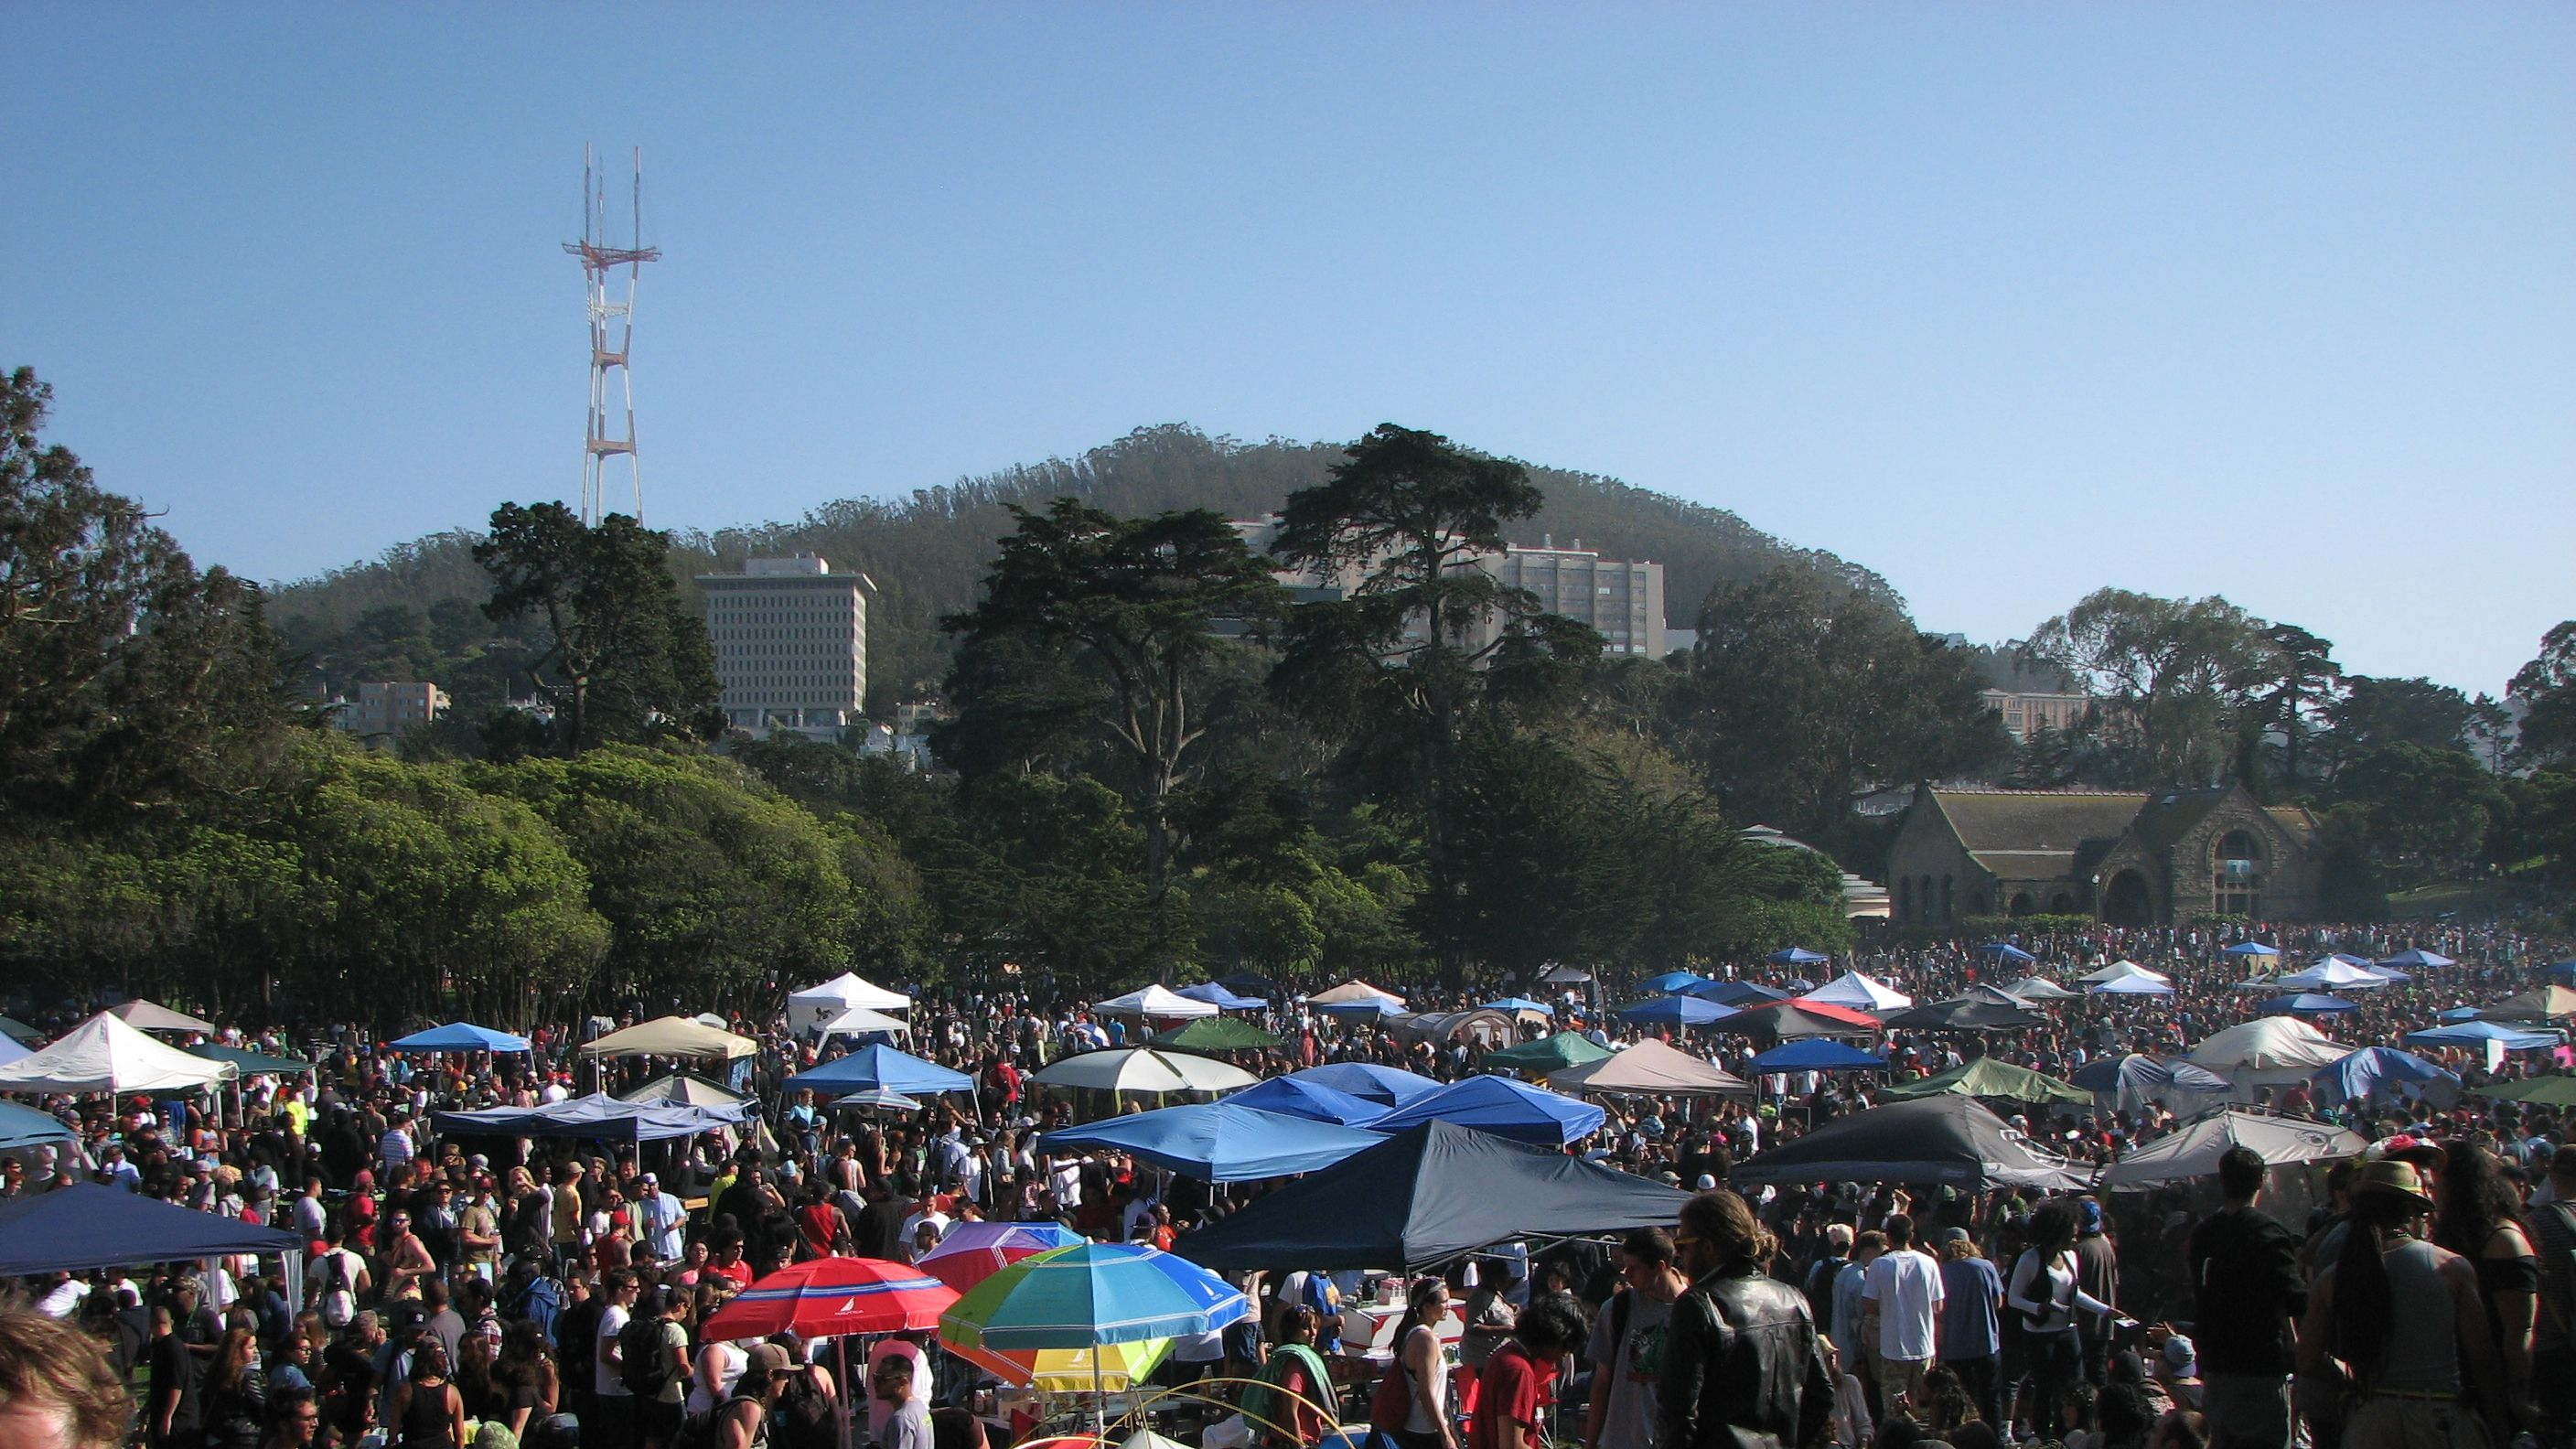 Survival Guide: How to win 420 in Golden Gate Park